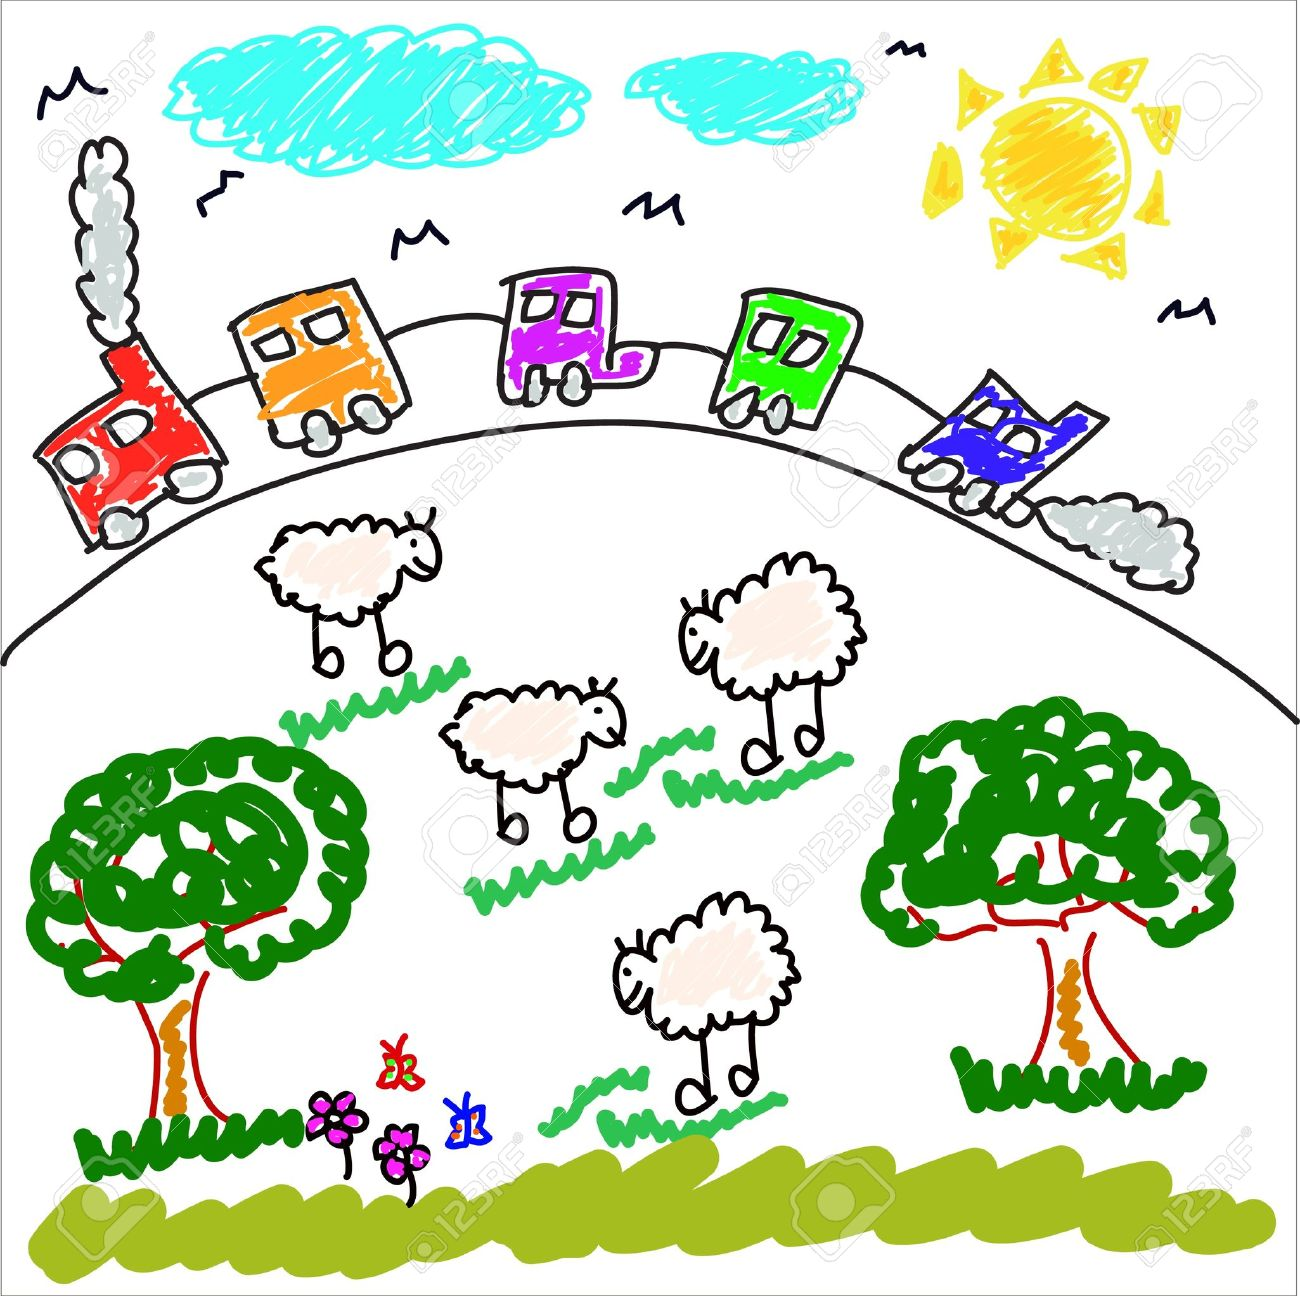 Draw clipart childrens art. Child drawing at getdrawings